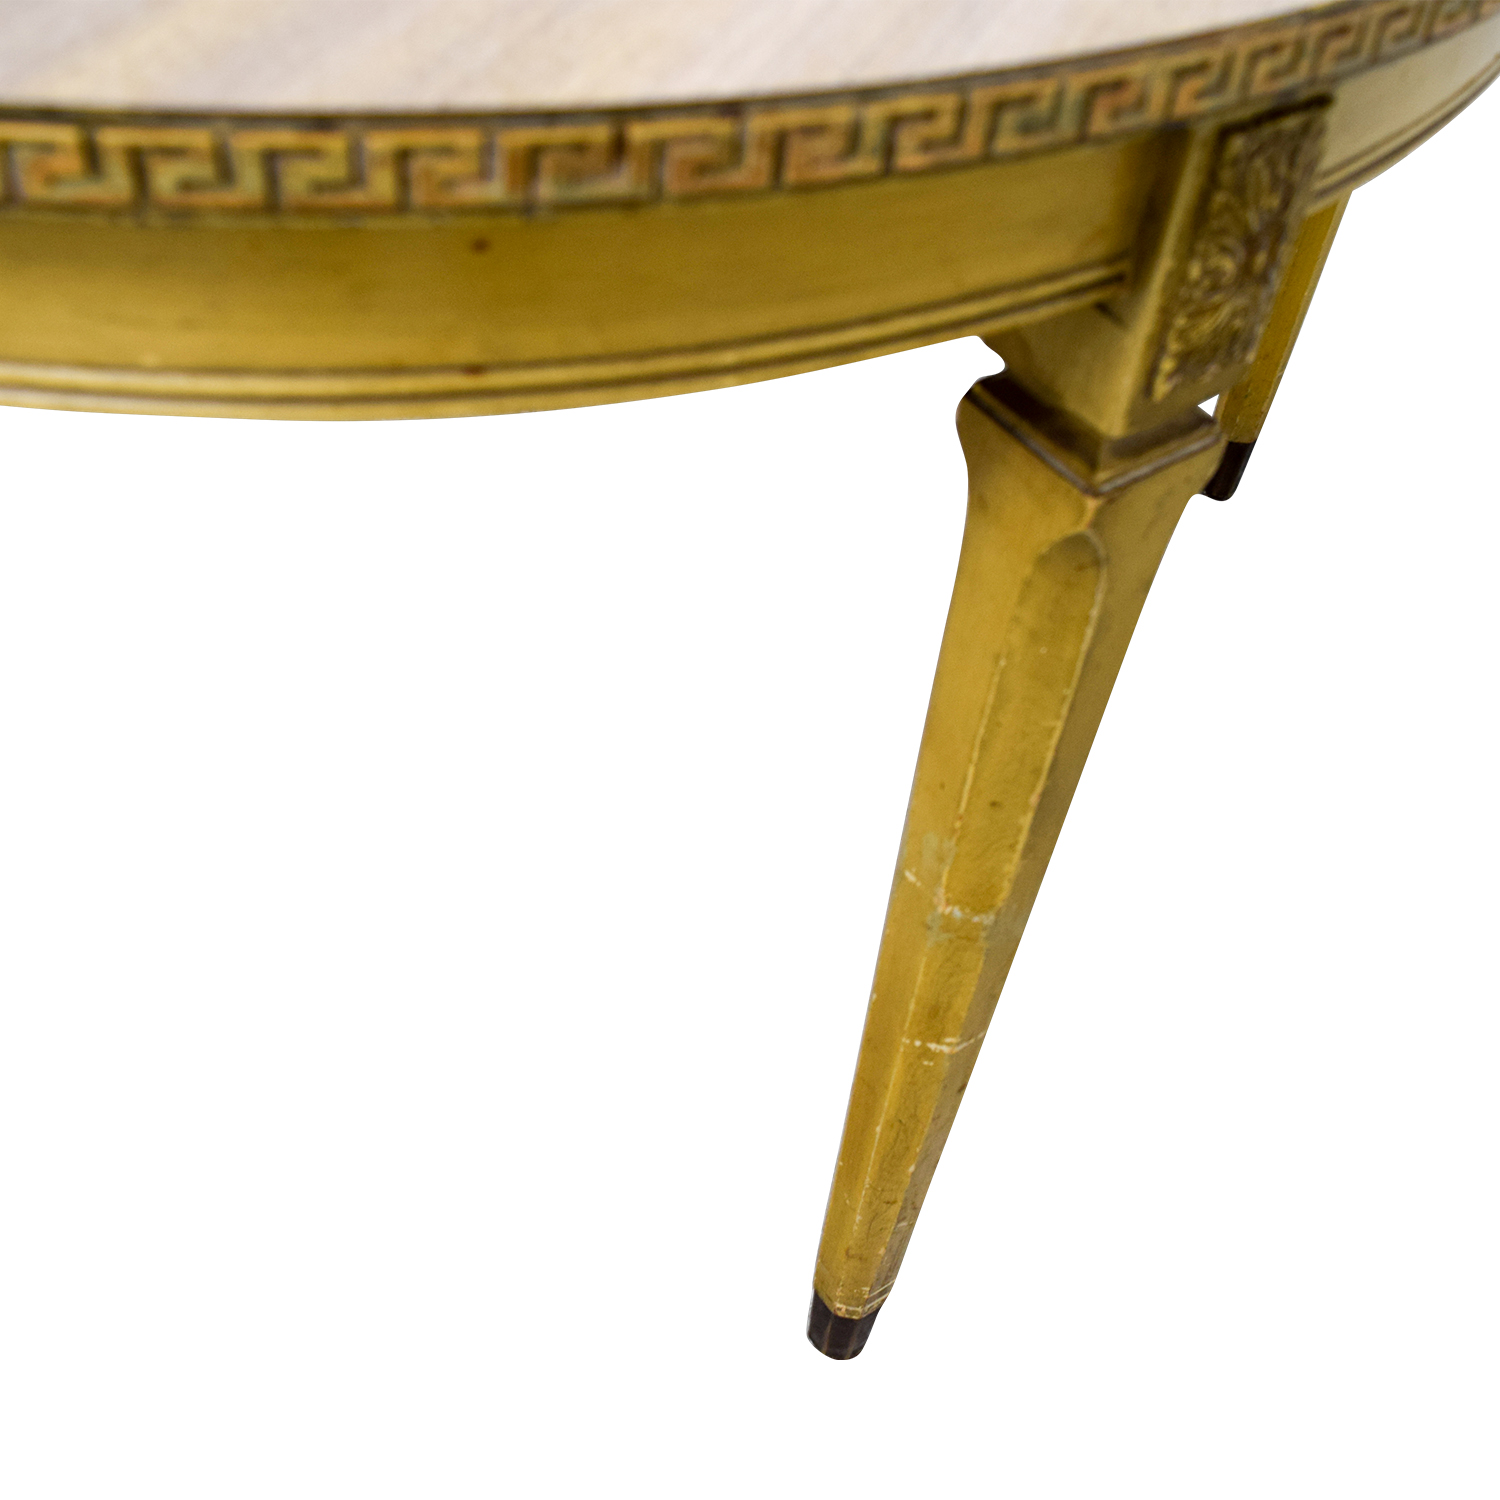 Vintage Greek Key Dining Table with Two Leaves